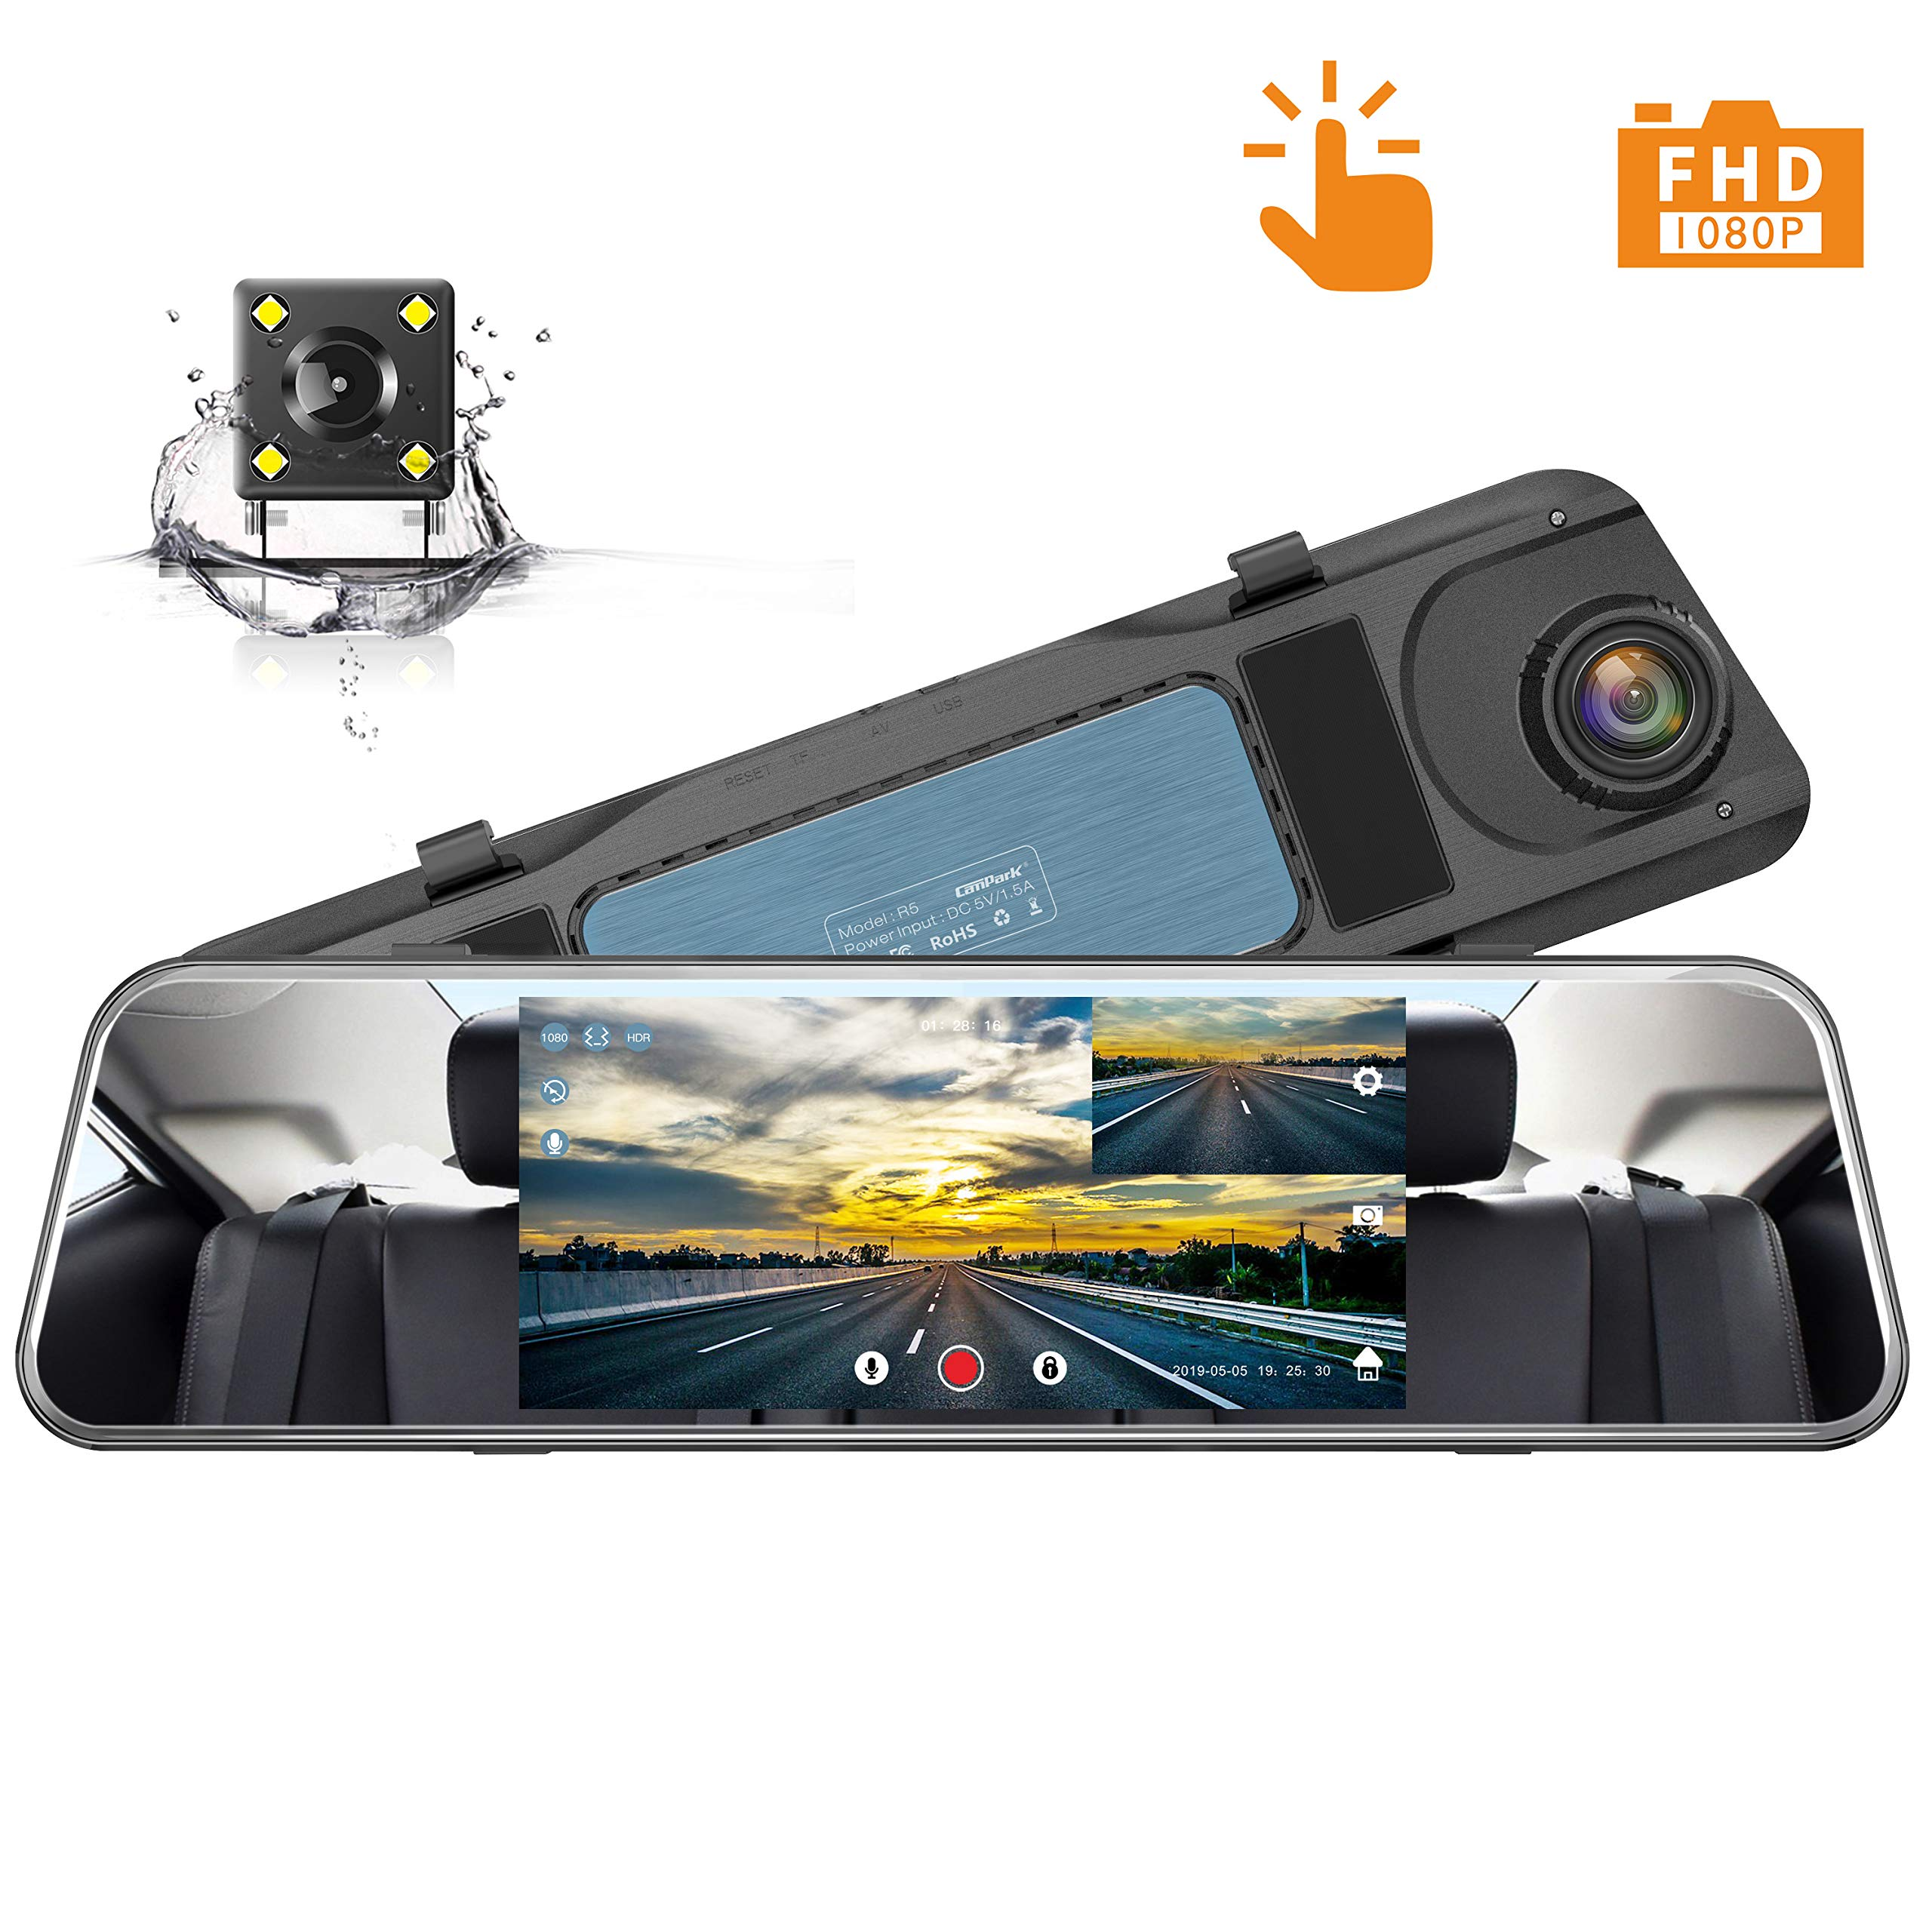 Campark Backup Camera 1080P Mirror Dash Cam 5 inch Touch Screen Rearview Front and Rear Dual Lens Dashboard Recorder with Waterproof Reversing Camera by Campark